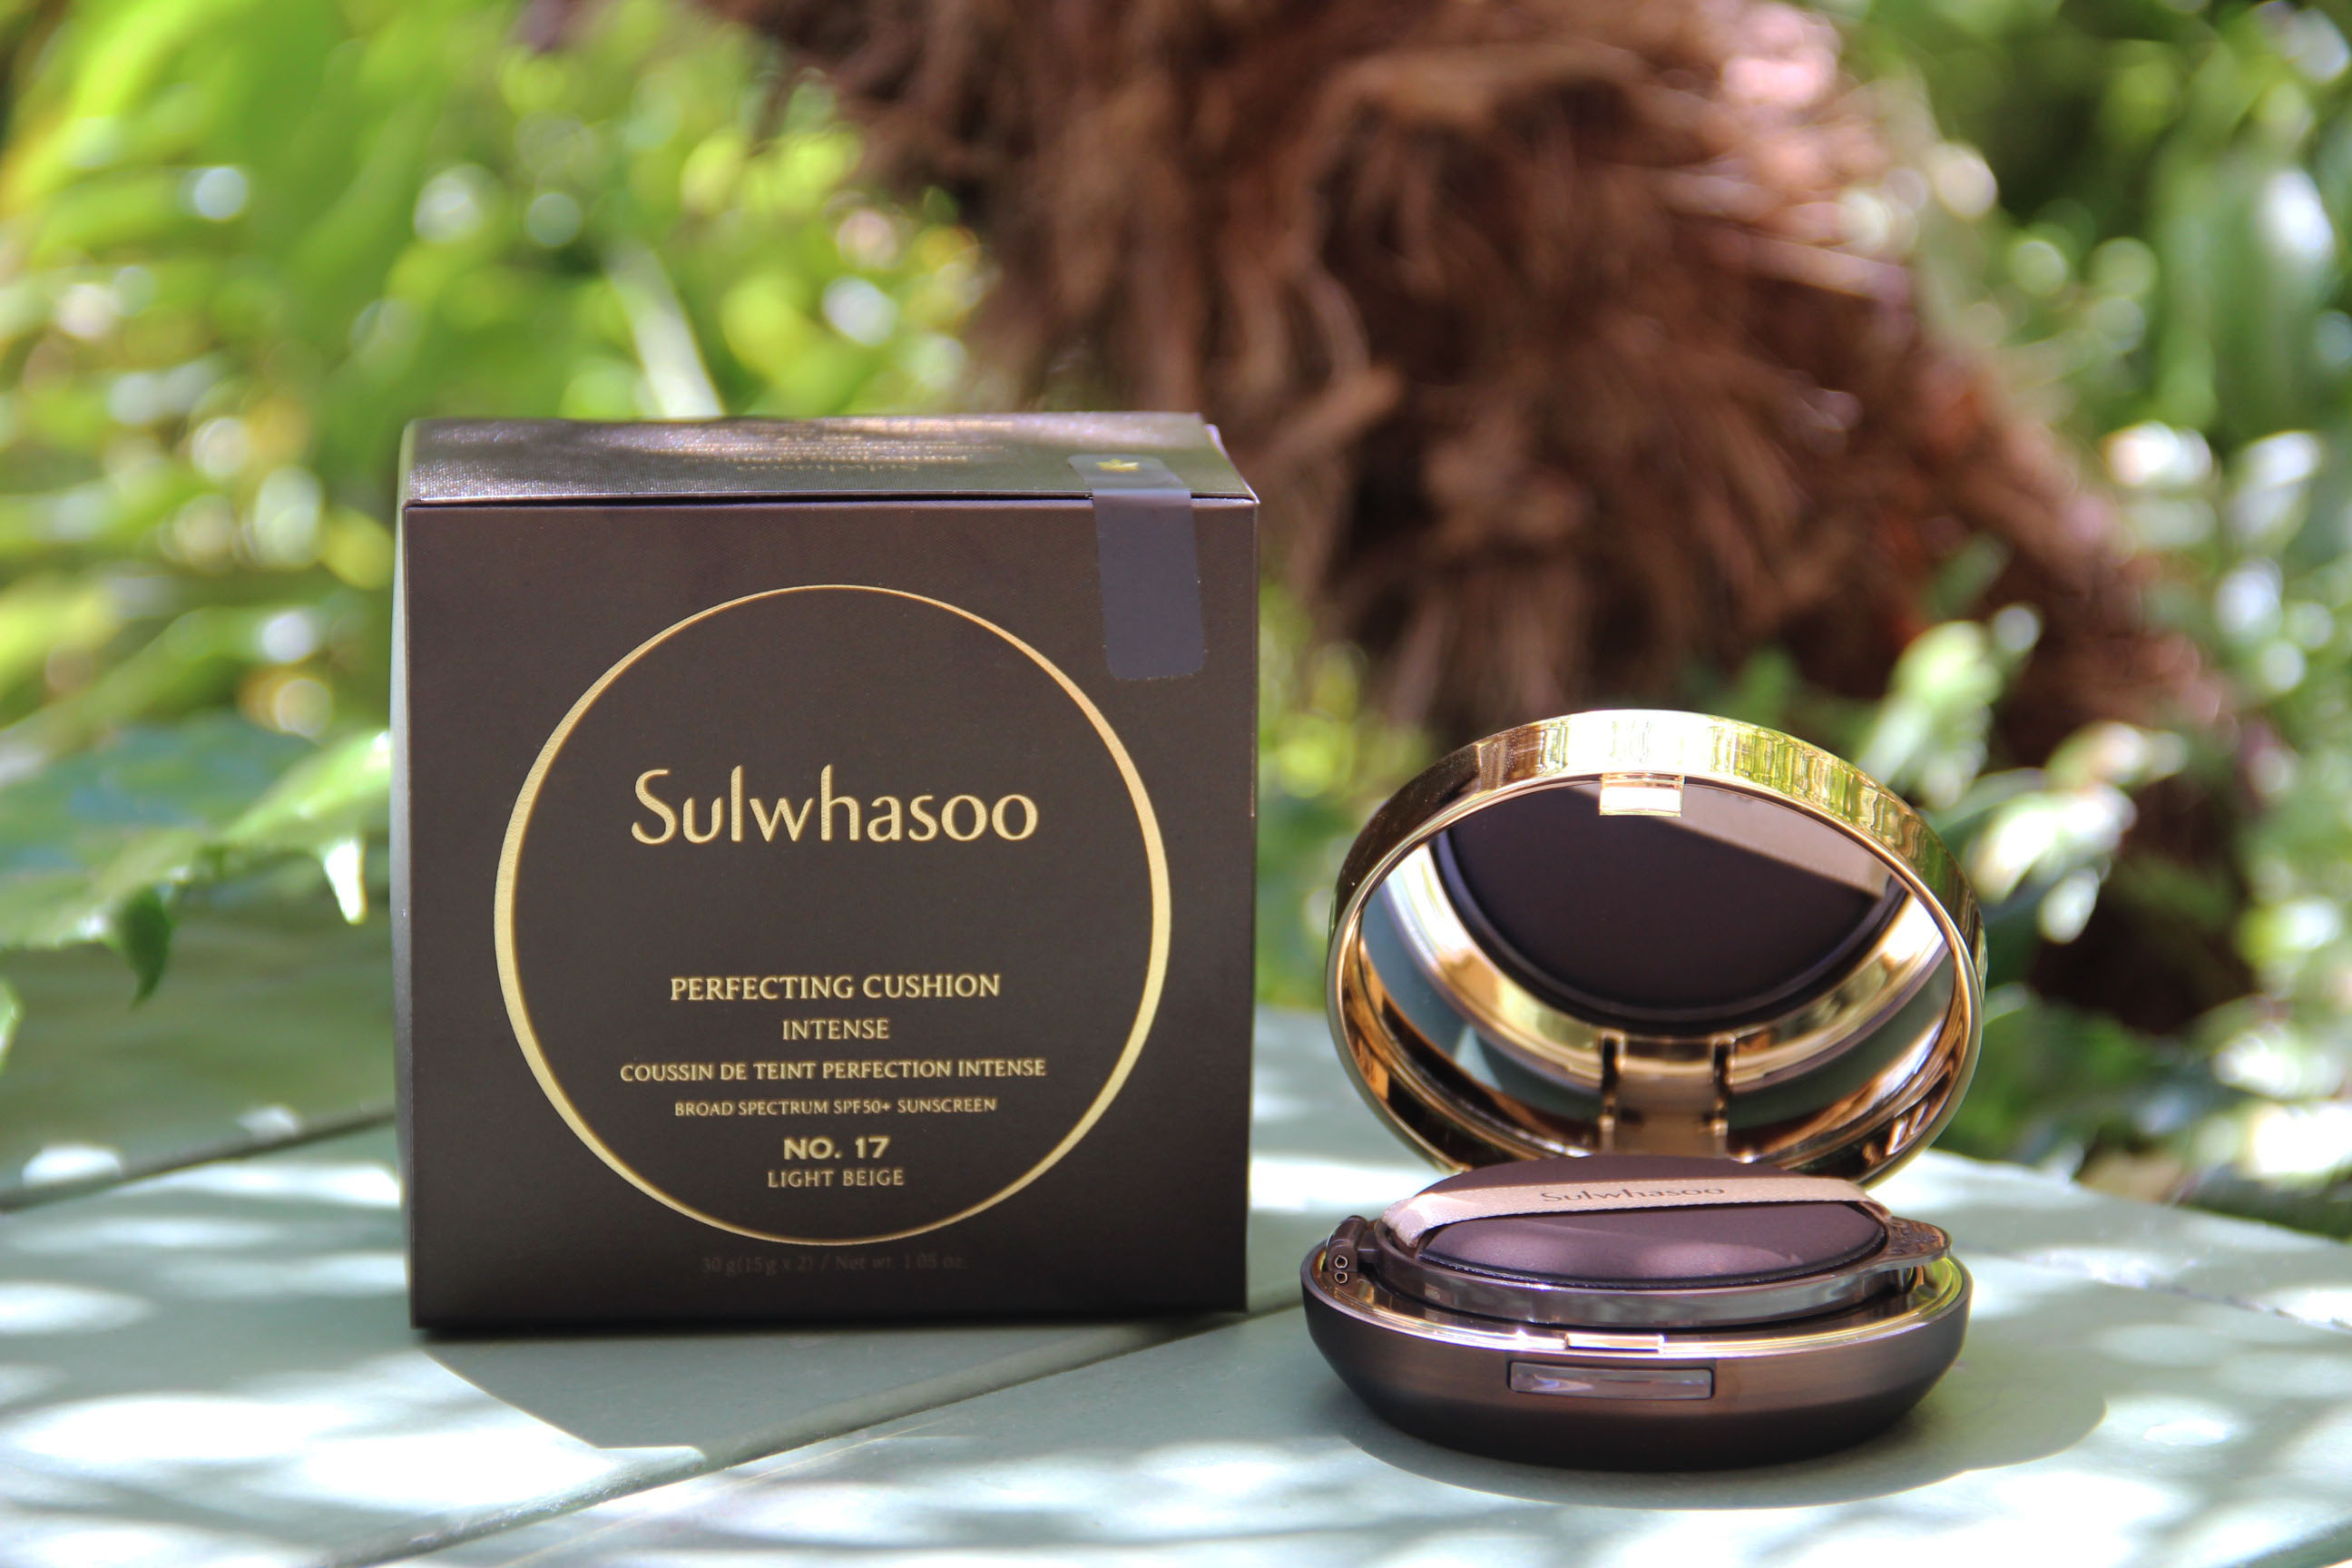 Suwhasoo Perfecting Dushion Intense